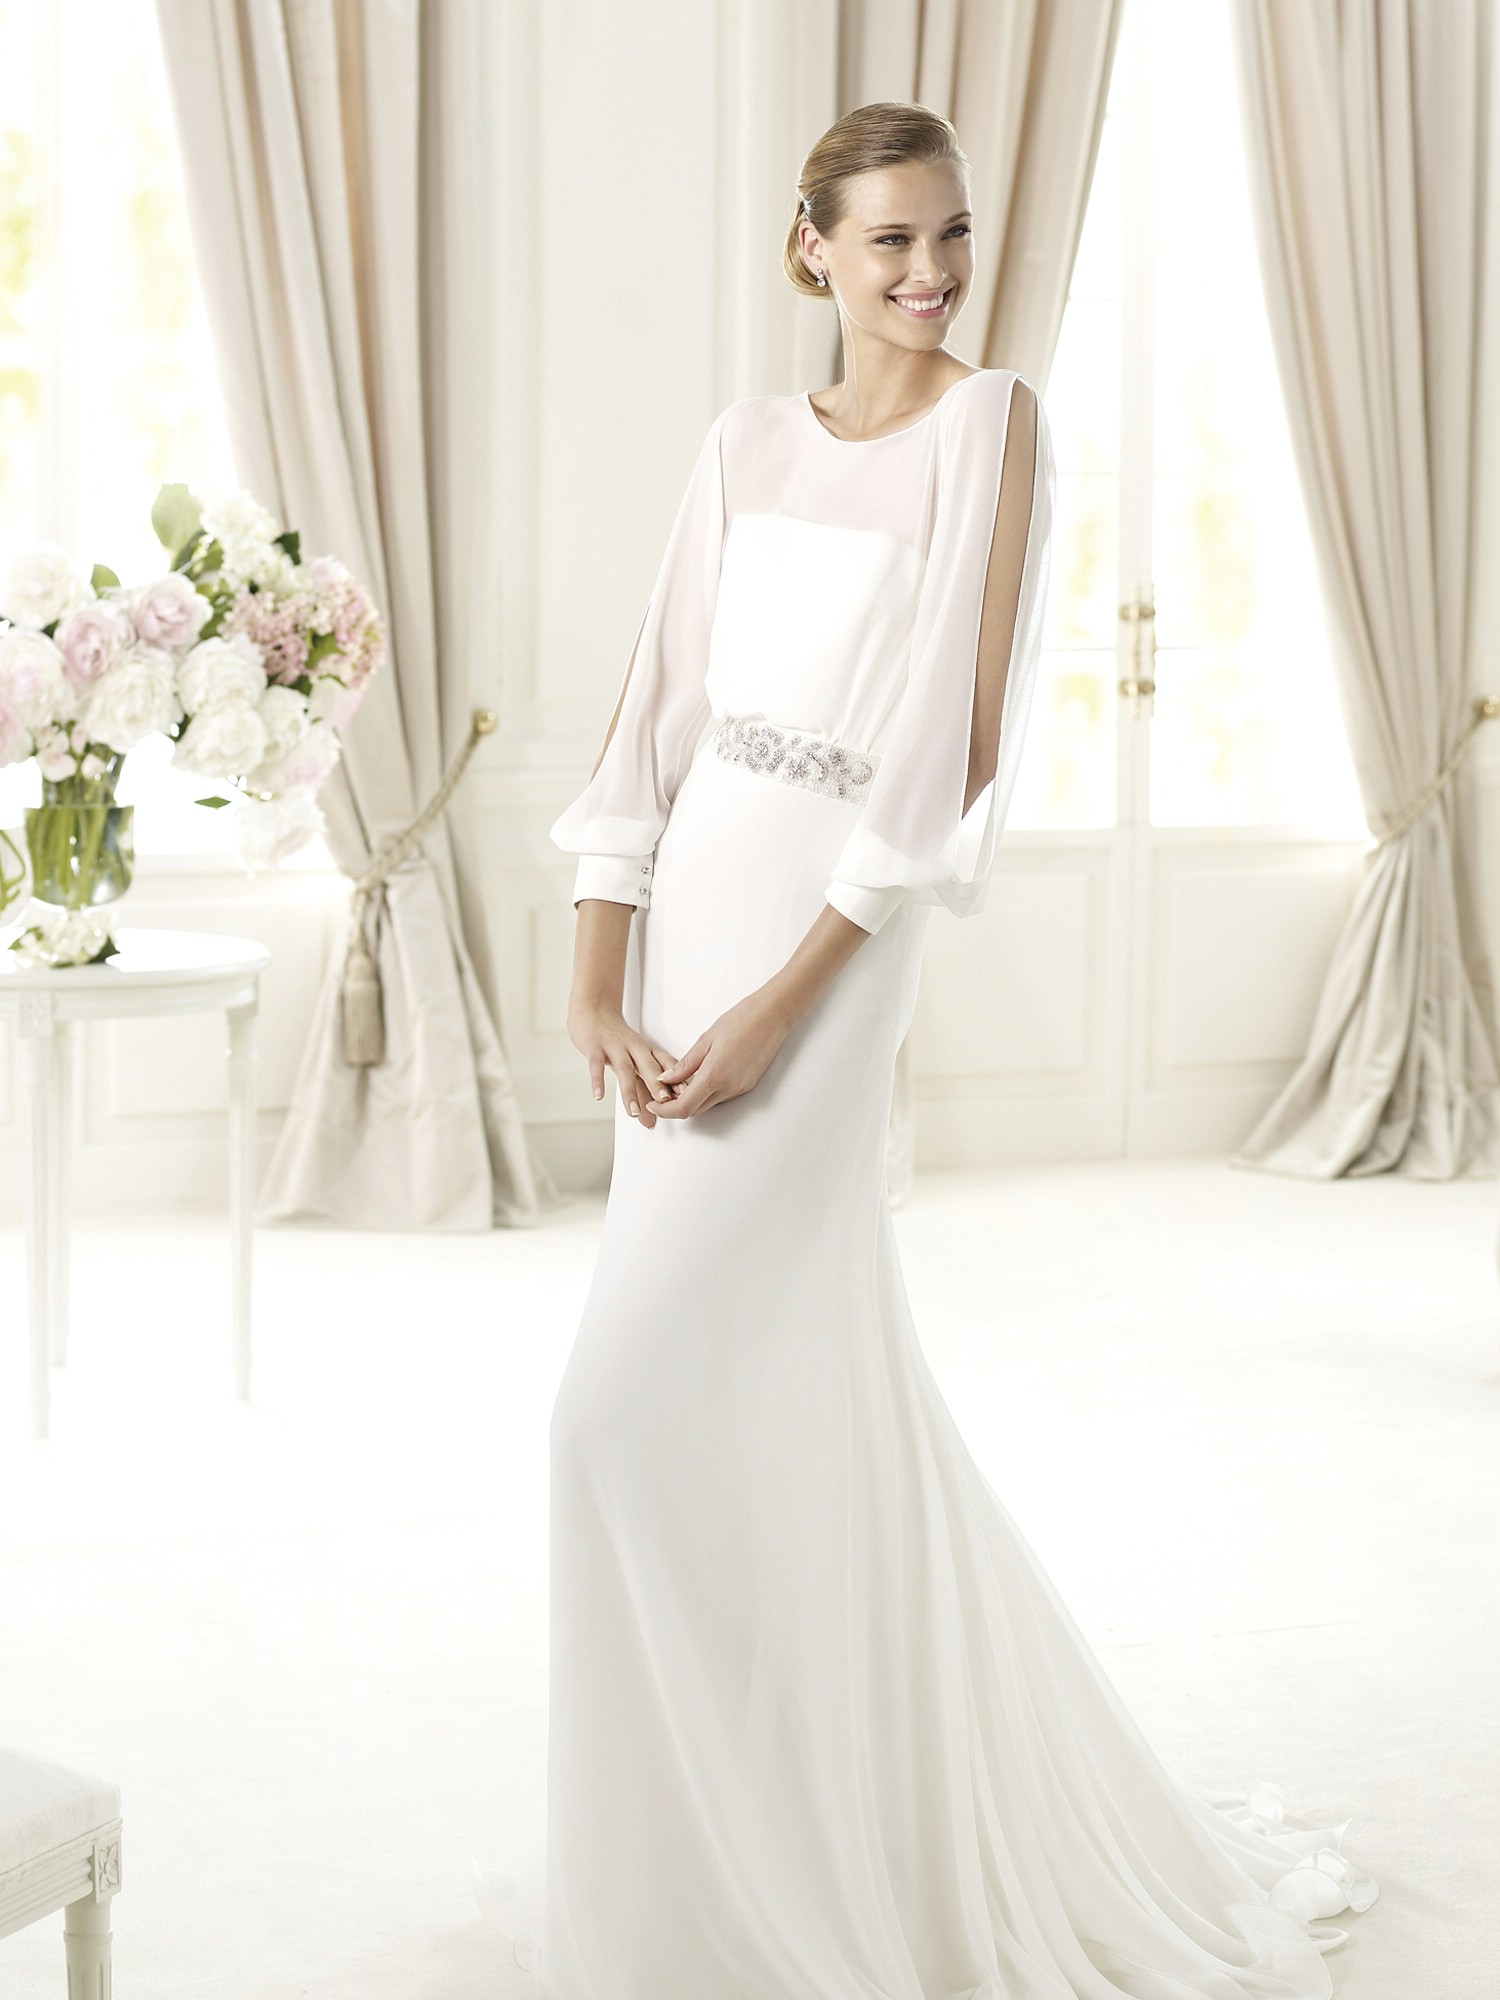 Wedding Inspiration Trends - On Page 5